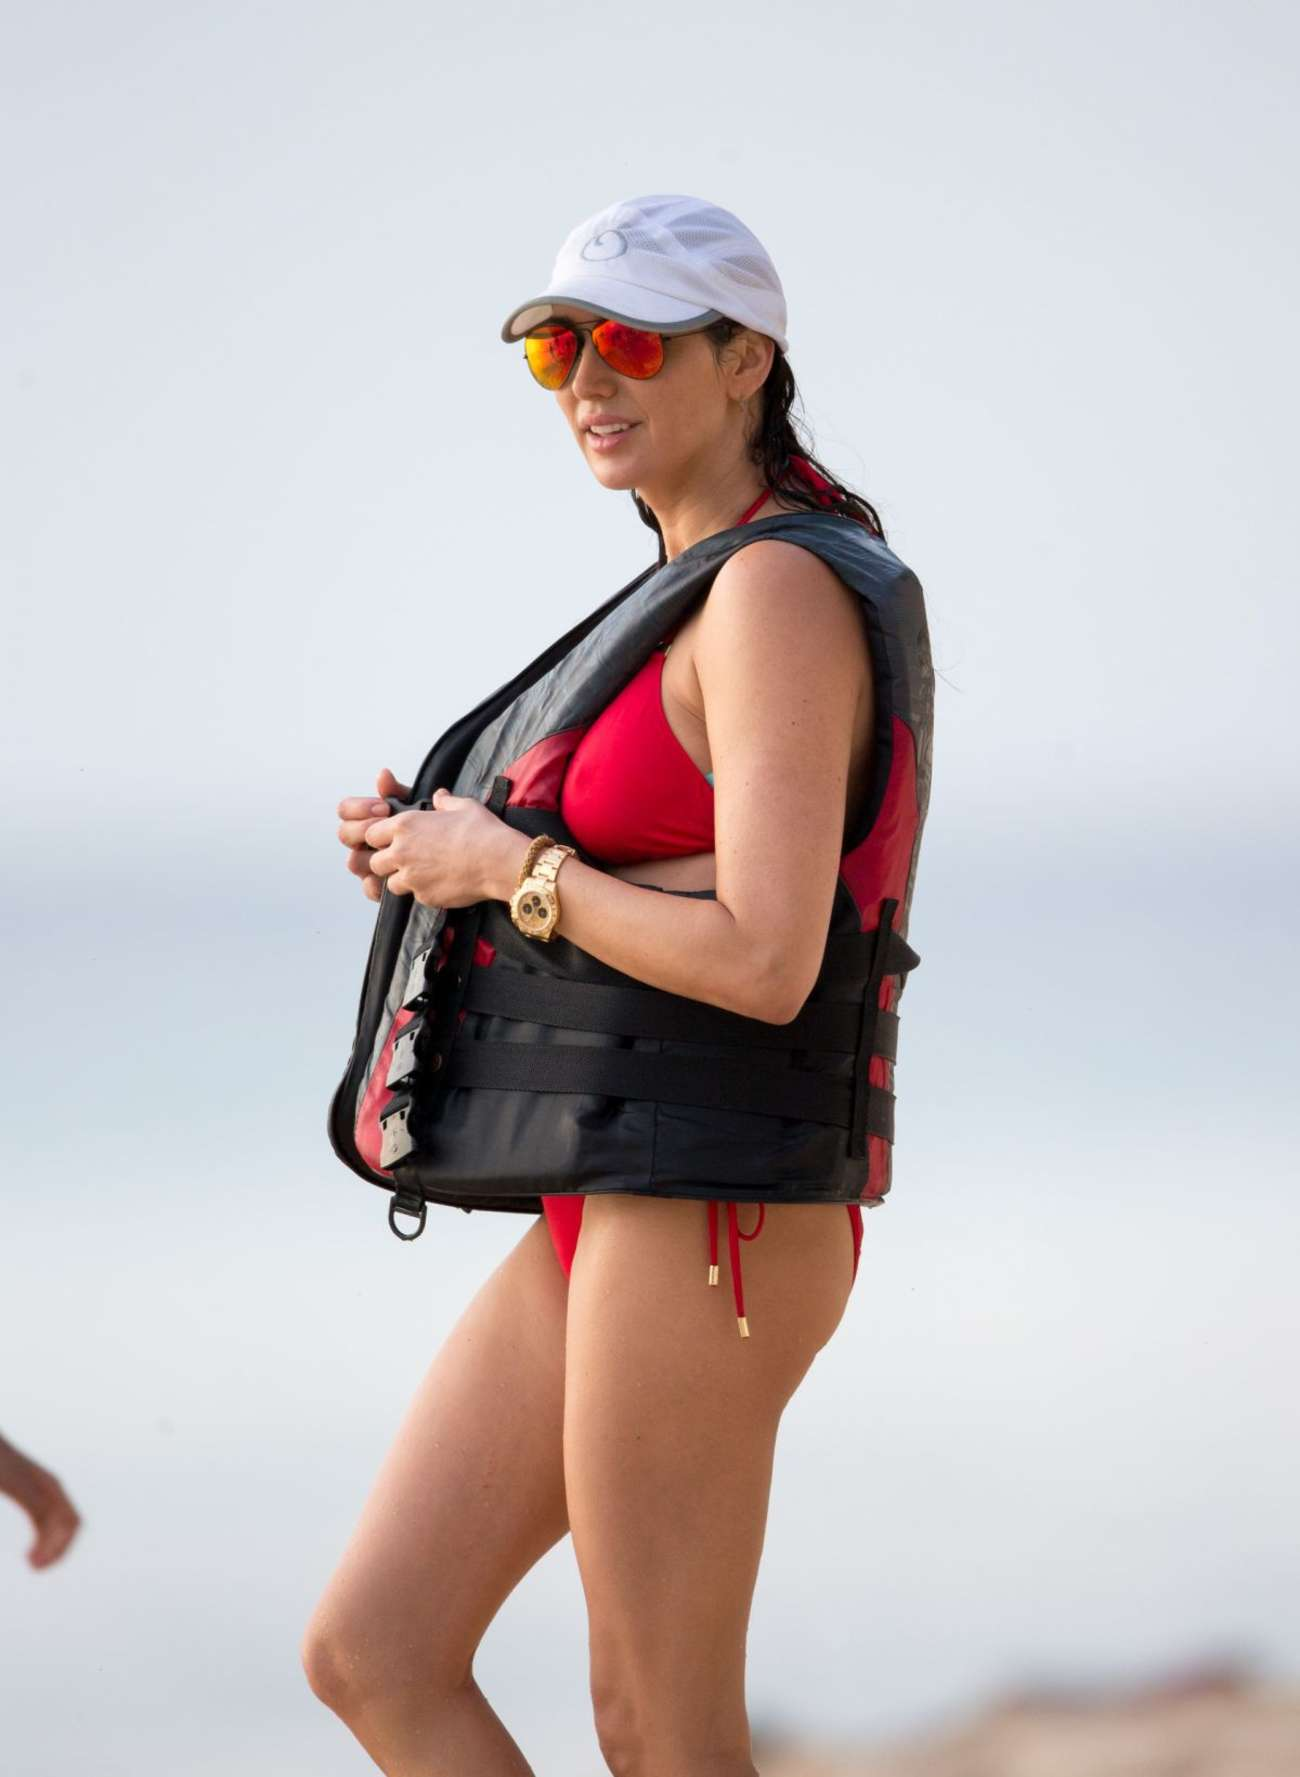 Lauren Silverman in Red Bikini on Jet-skiing in Barbados